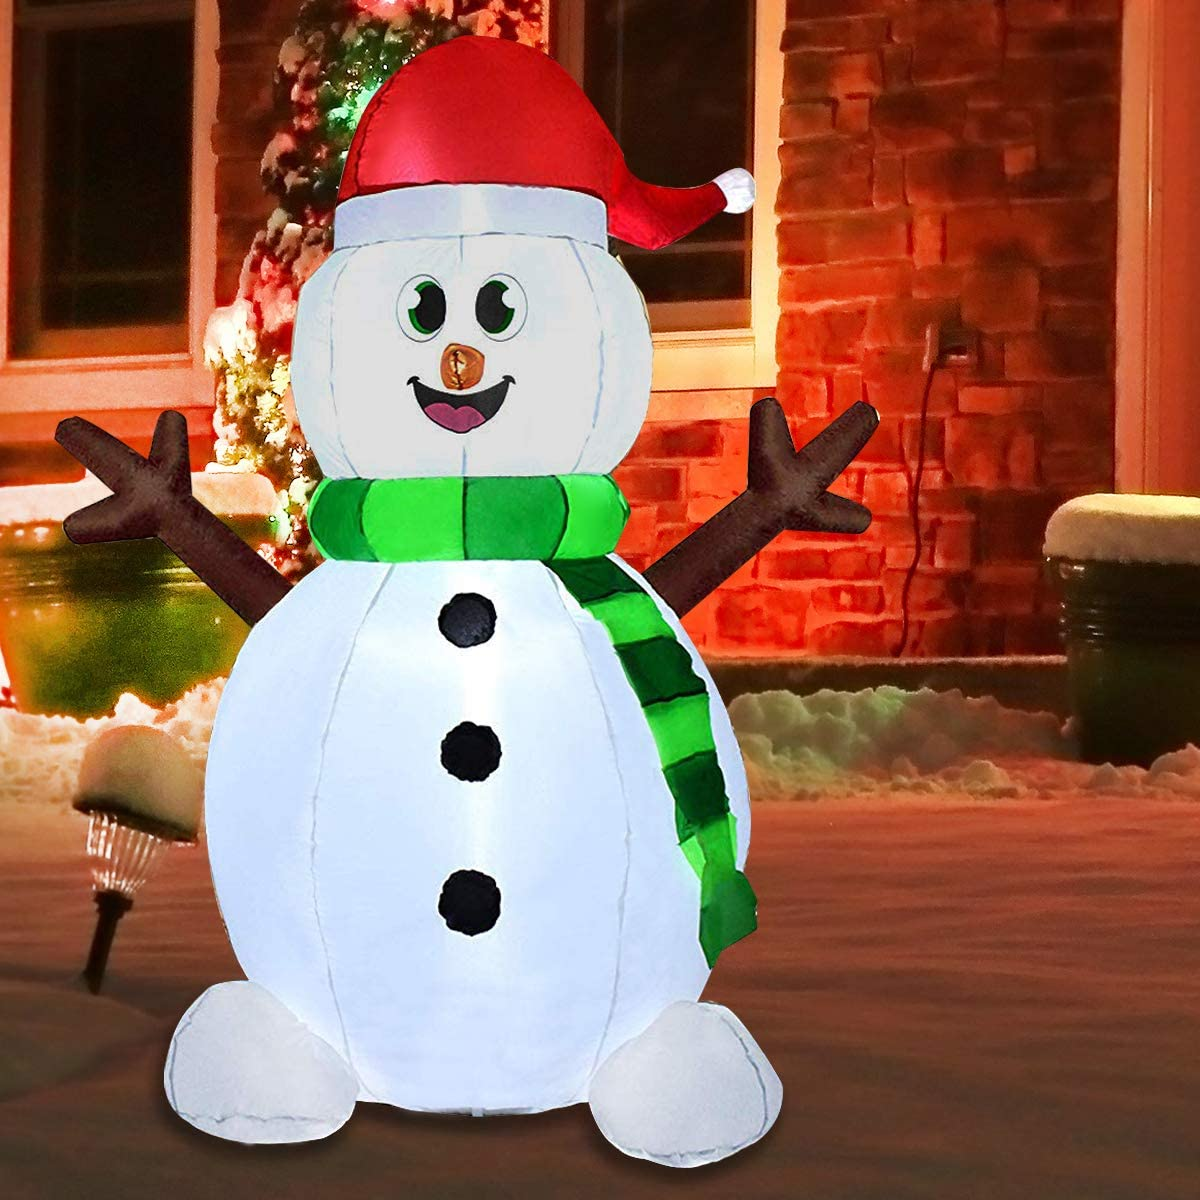 Joiedomi 5 Foot Snowman Inflatable LED Light Up Christmas Xmas for Blow Up Yard Decoration, Indoor Outdoor Garden Christmas Decoration